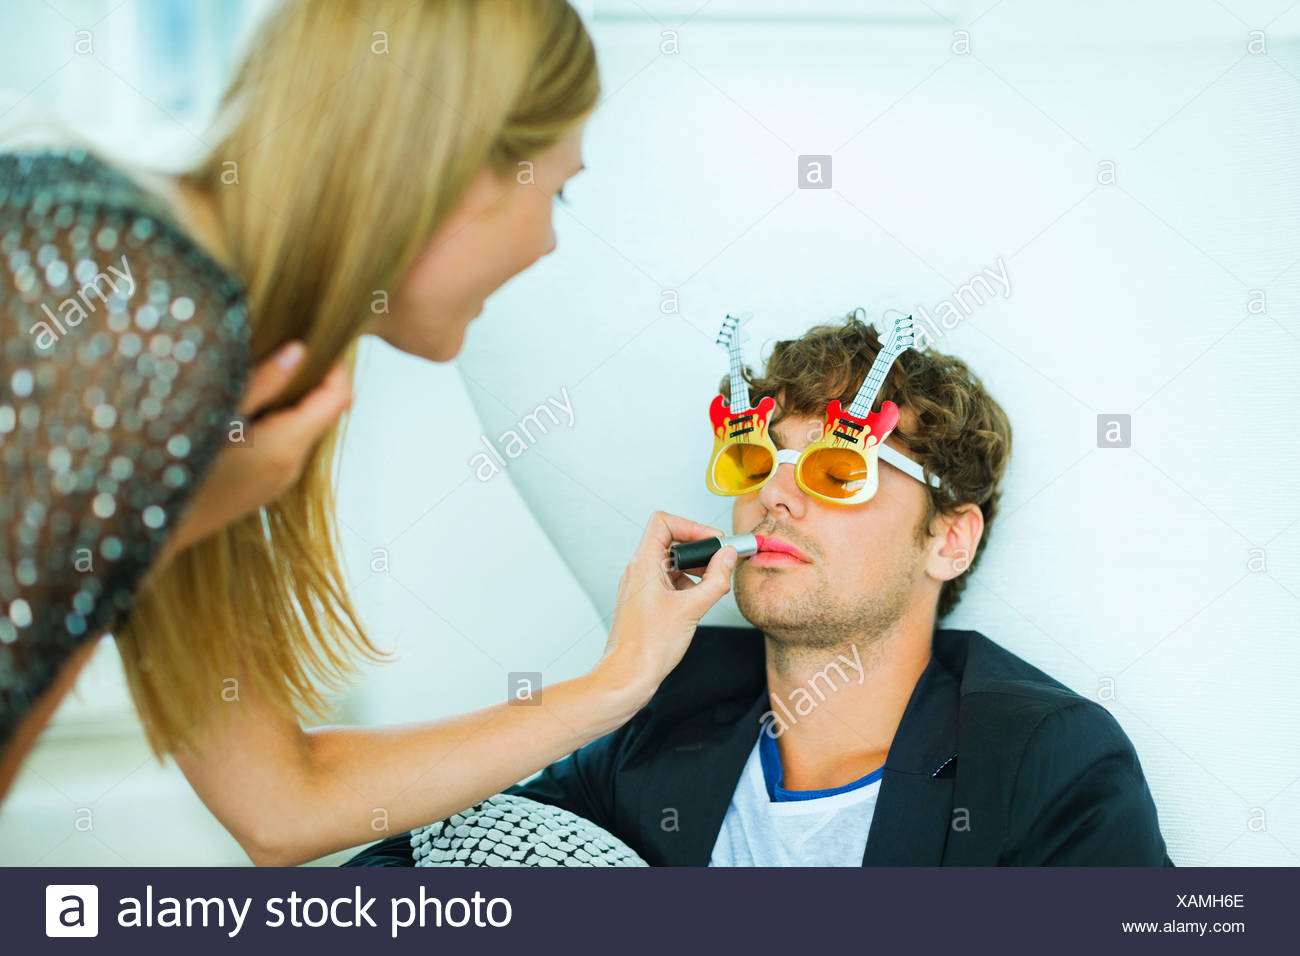 Woman applying lipstick to sleeping man at party Stock Photo